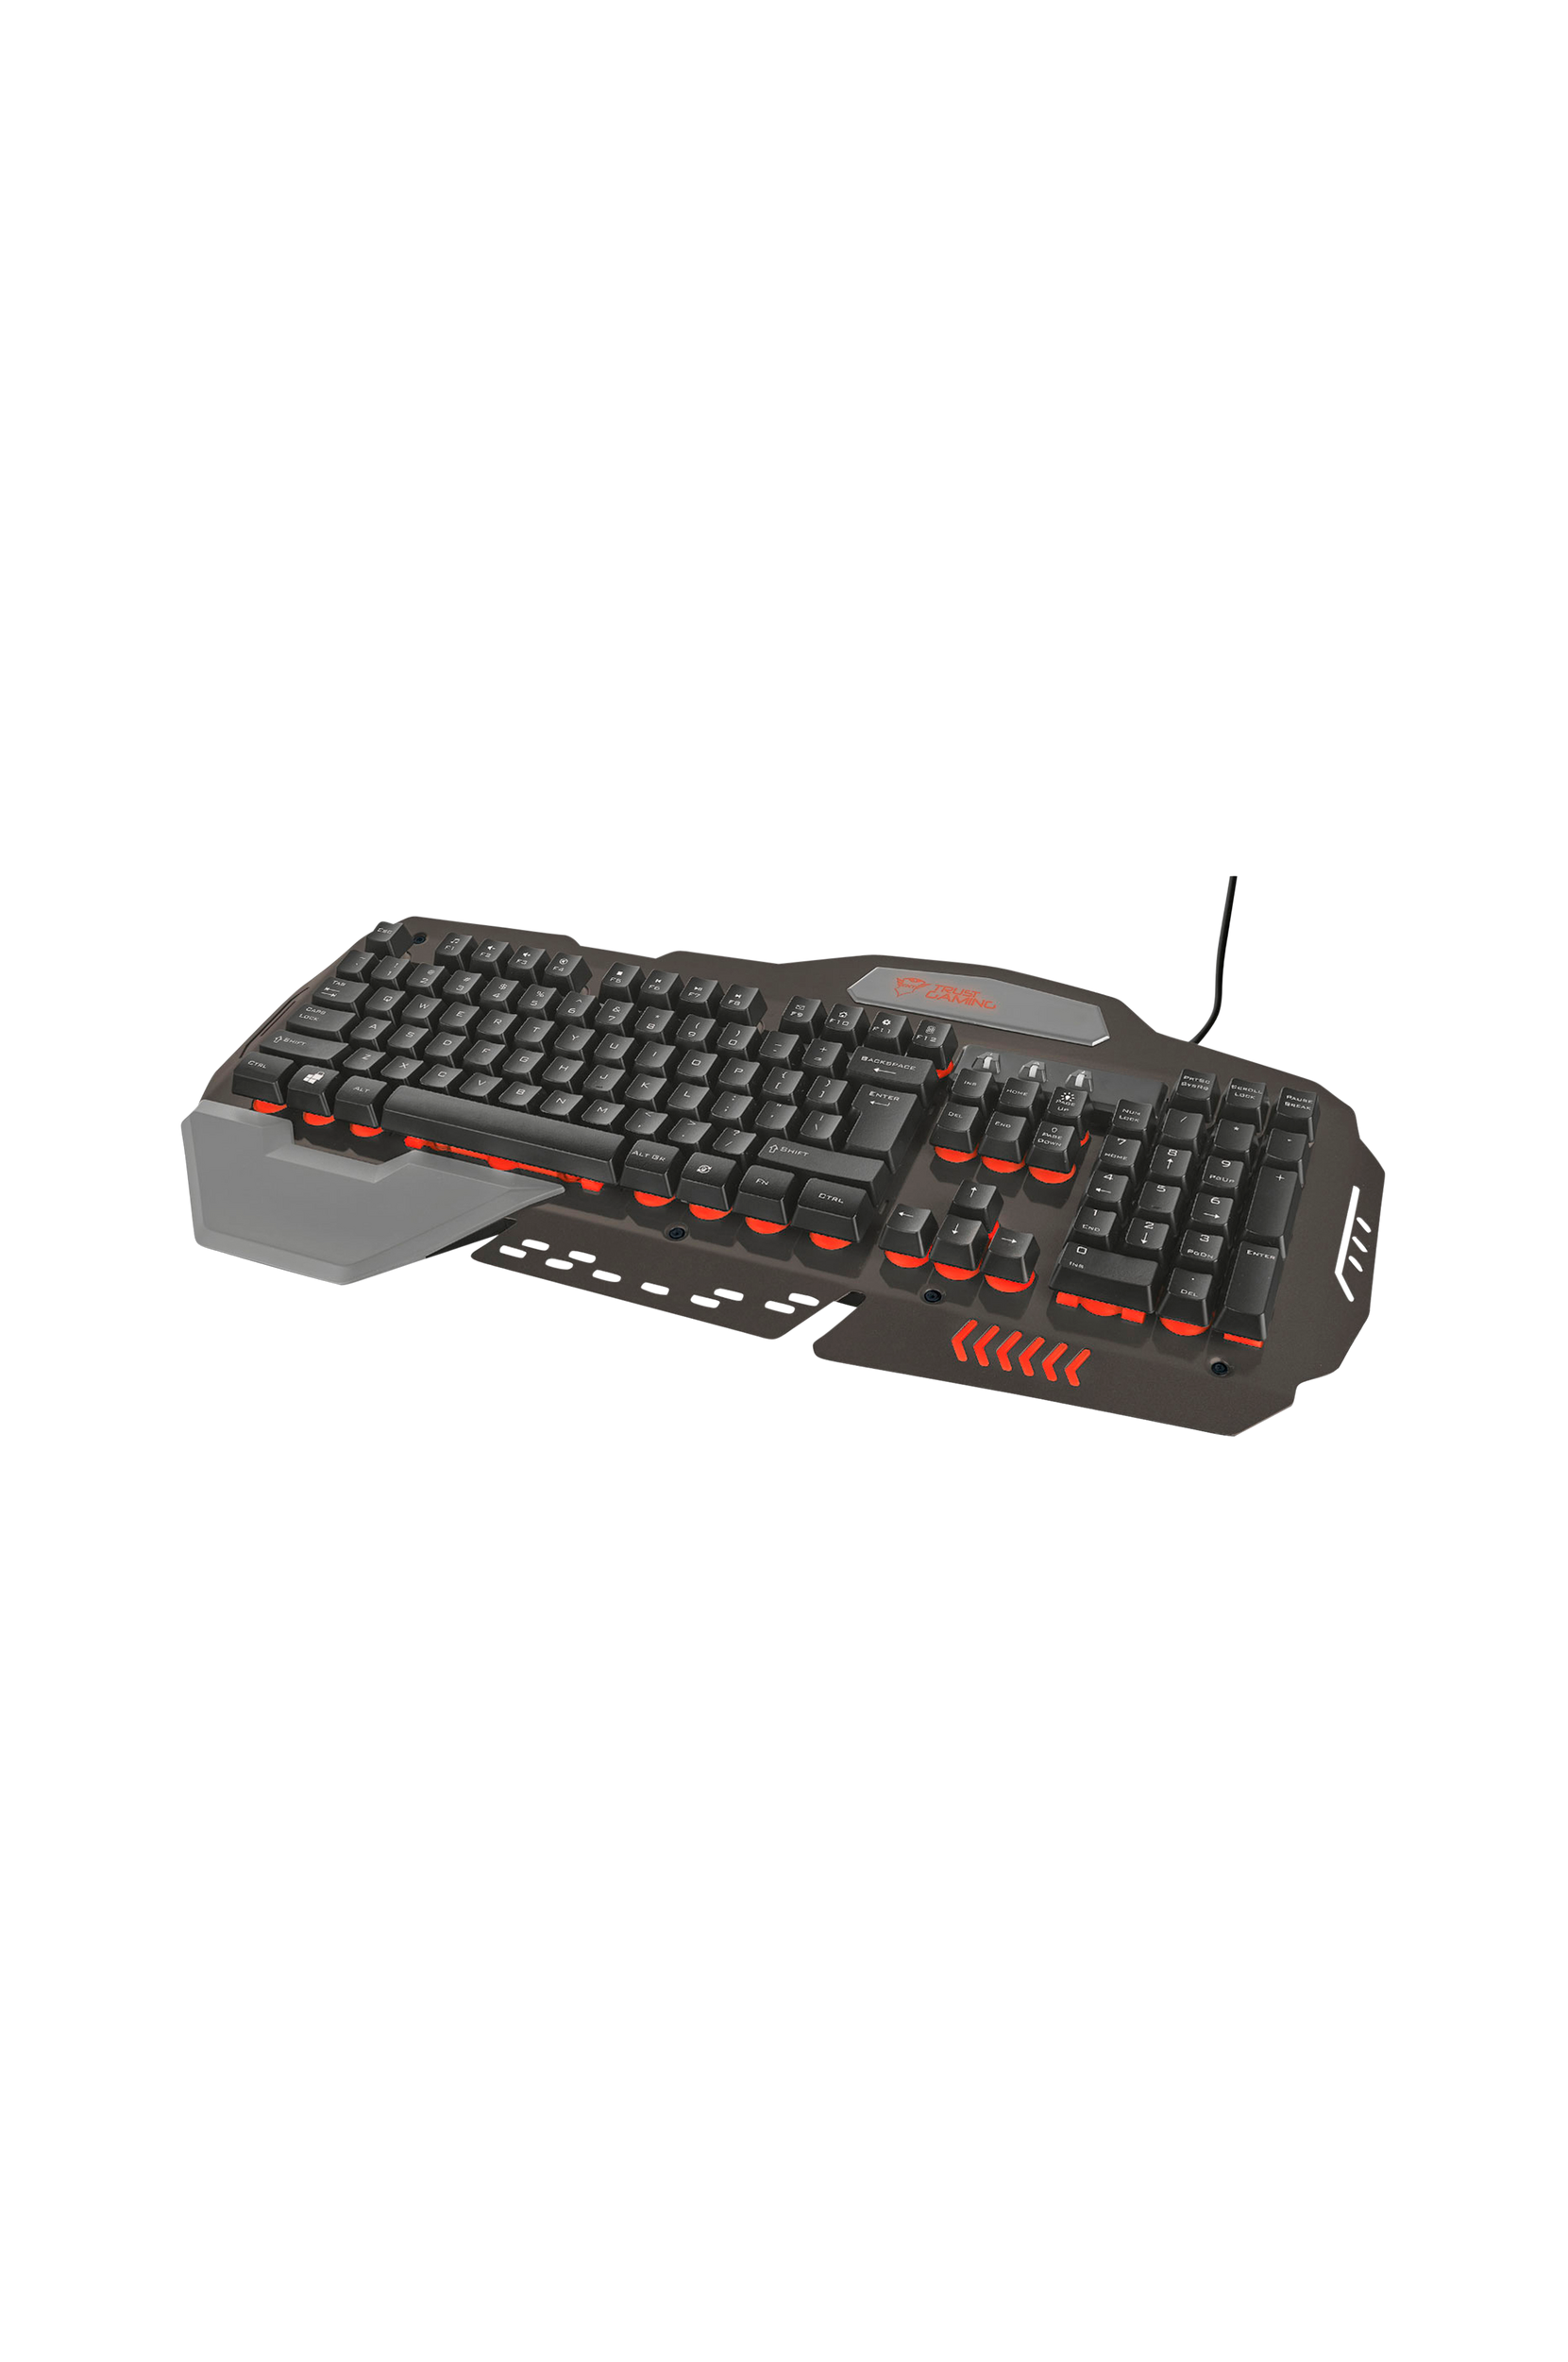 GXT 850 Metal Gaming Keyboard